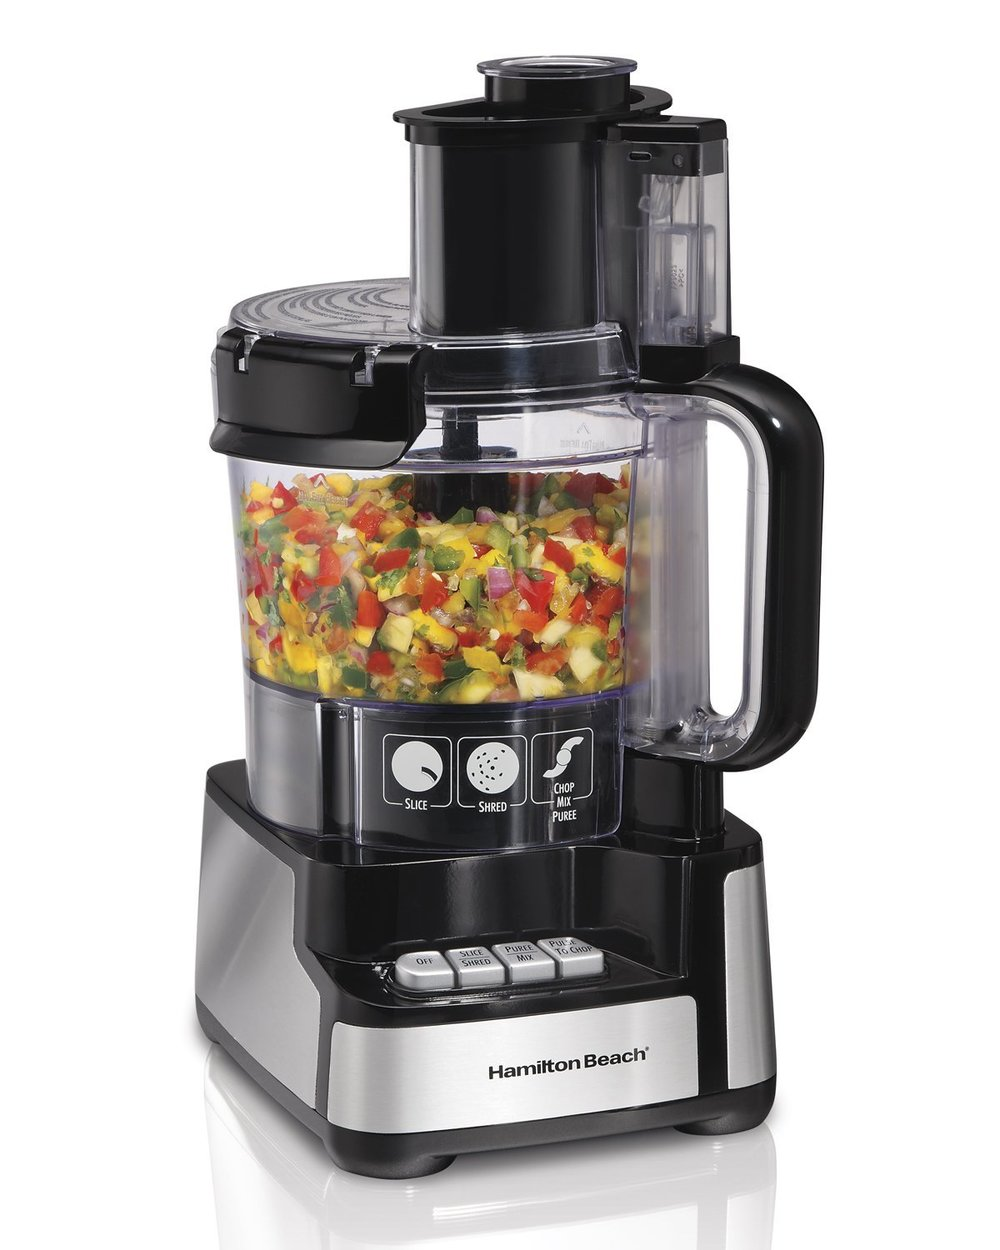 May sound boring but we use our food processor weekly--do not forego this neccessity.   Amazon